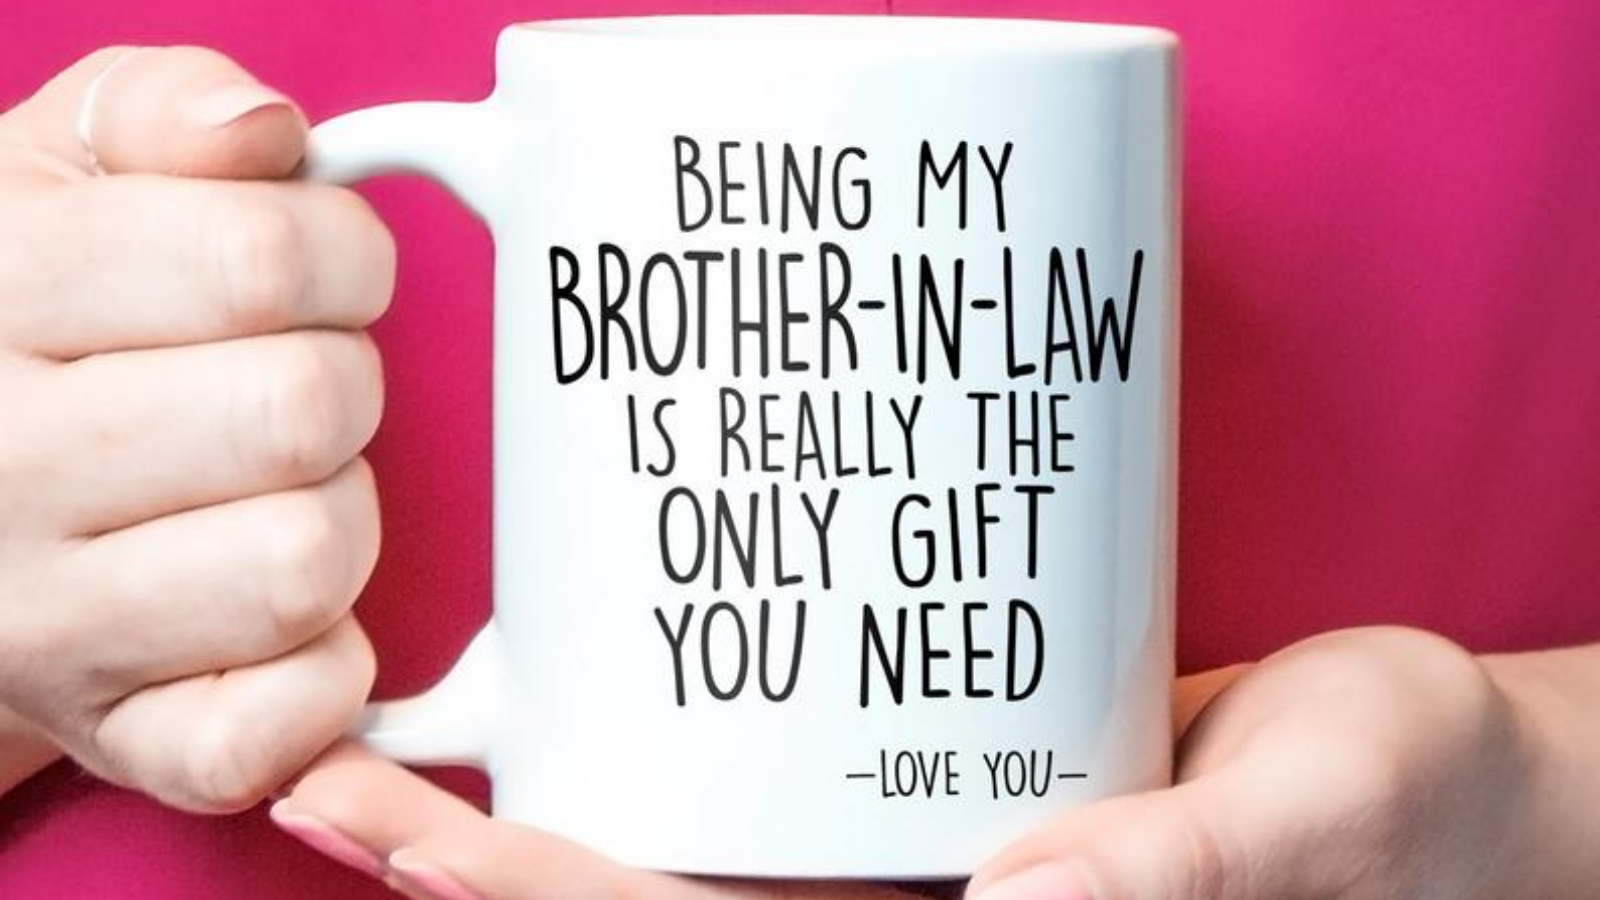 40 Best Gifts For Brothers Gift Ideas For Your Sibling Or Brother In Law